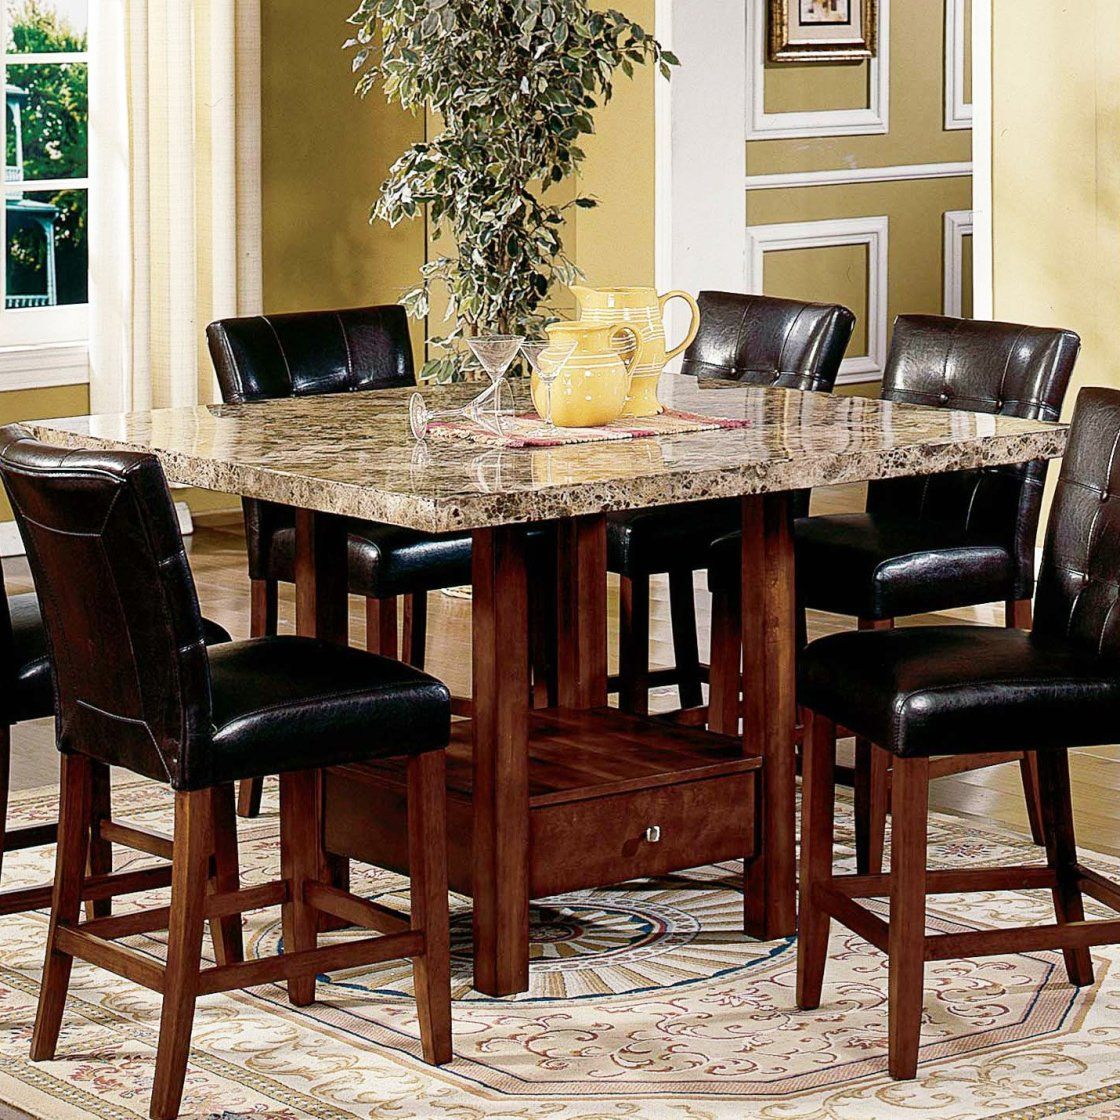 kitchen tables sets built in trash cans for the pin by hannah kamara on dining rooms granite table with storage marble